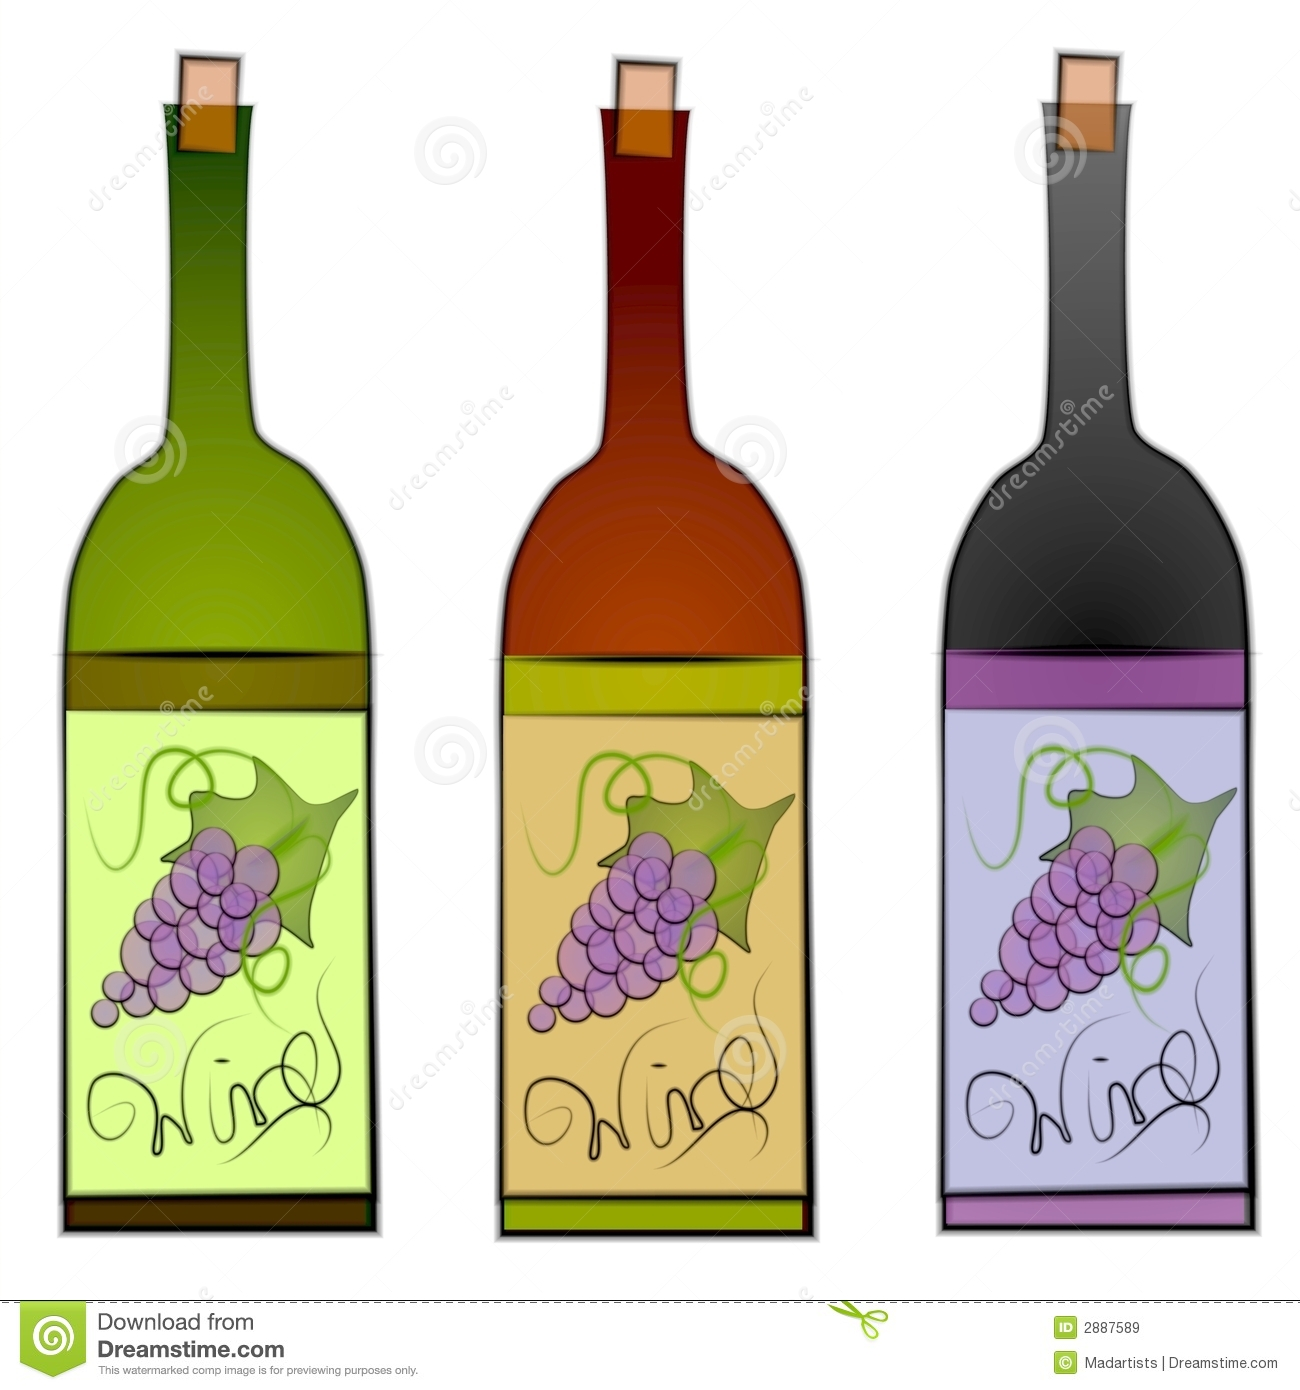 Wines clipart #12